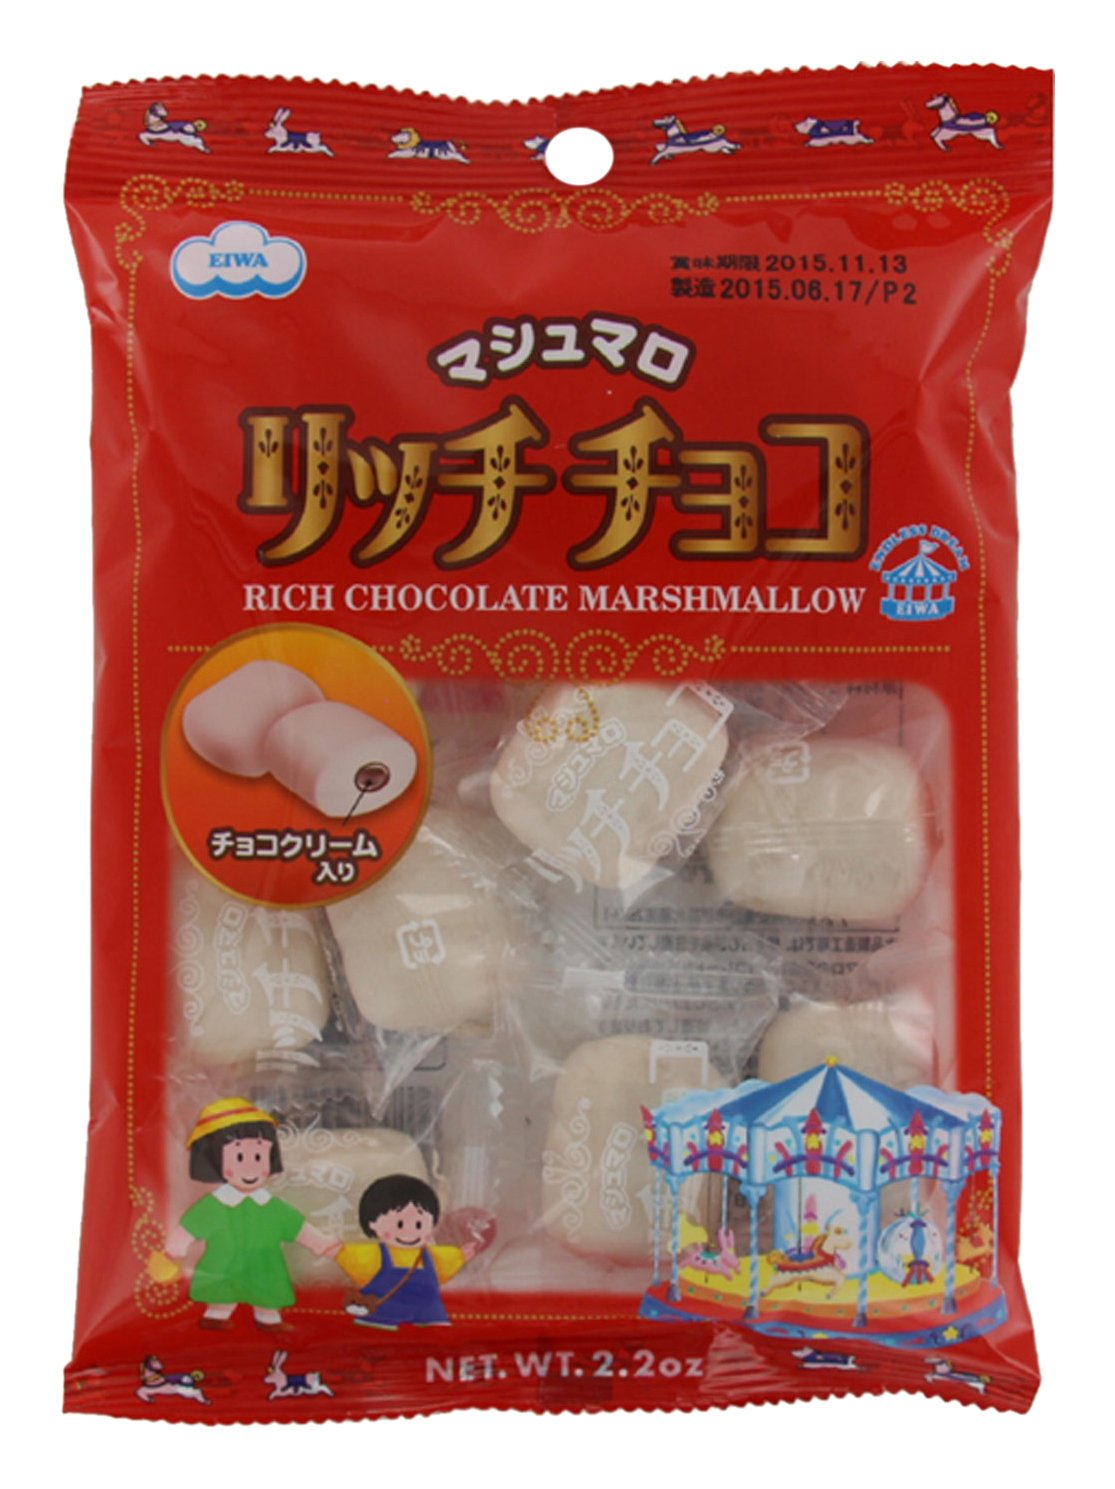 EIWA rich chocolate marshmallow 66g X 12 pieces by Best Choice Products (Image #1)